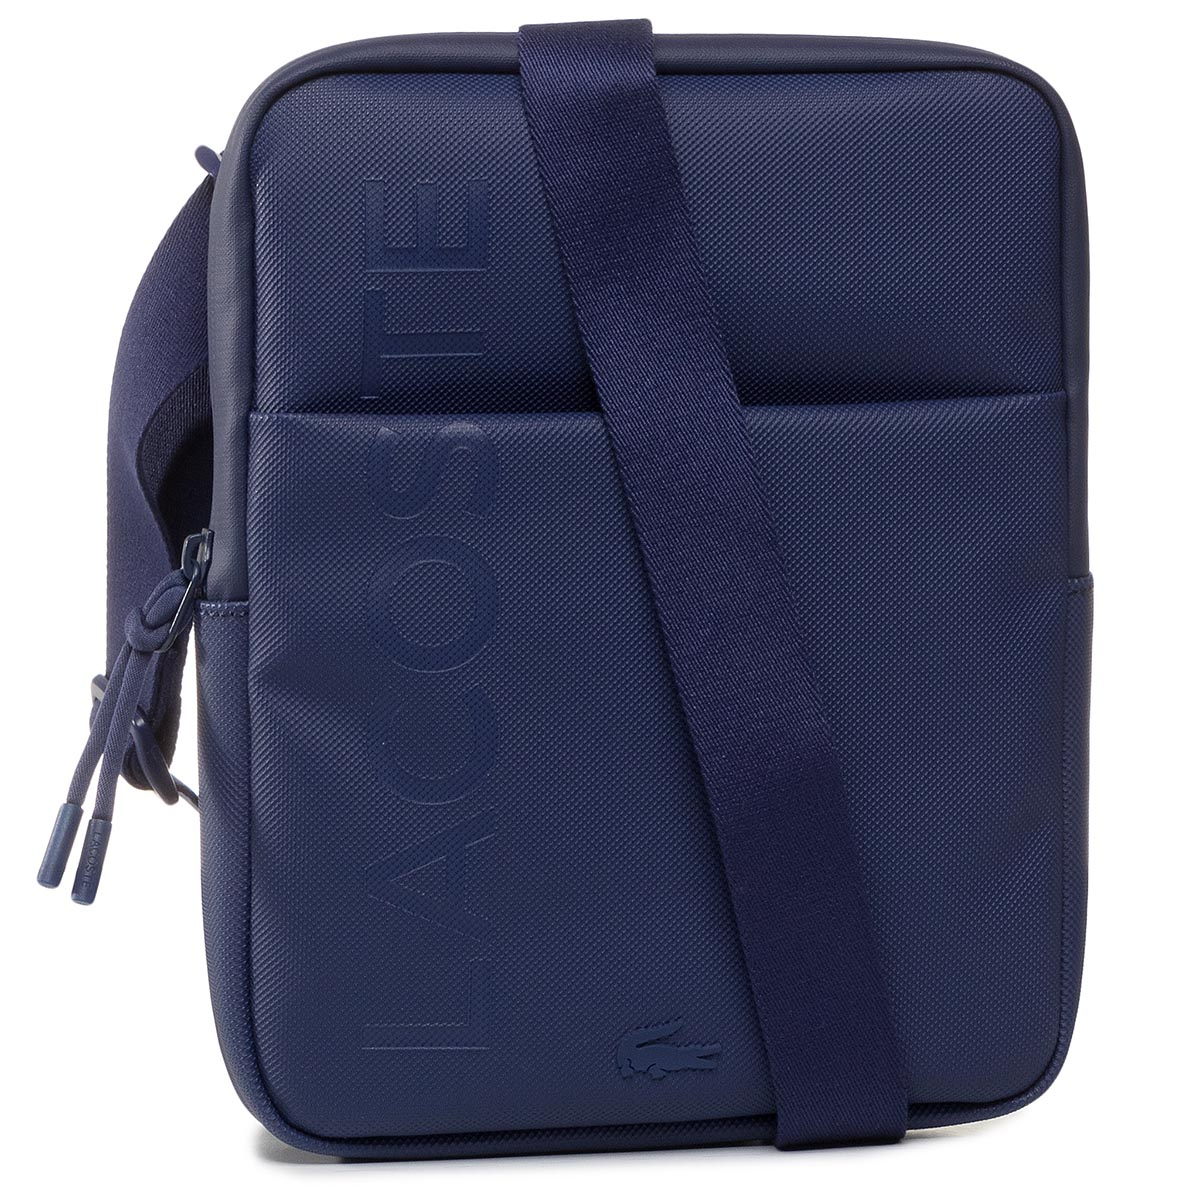 Geantă crossover LACOSTE - M Flat Crossover Bag NH3135PO Blue Depths D55